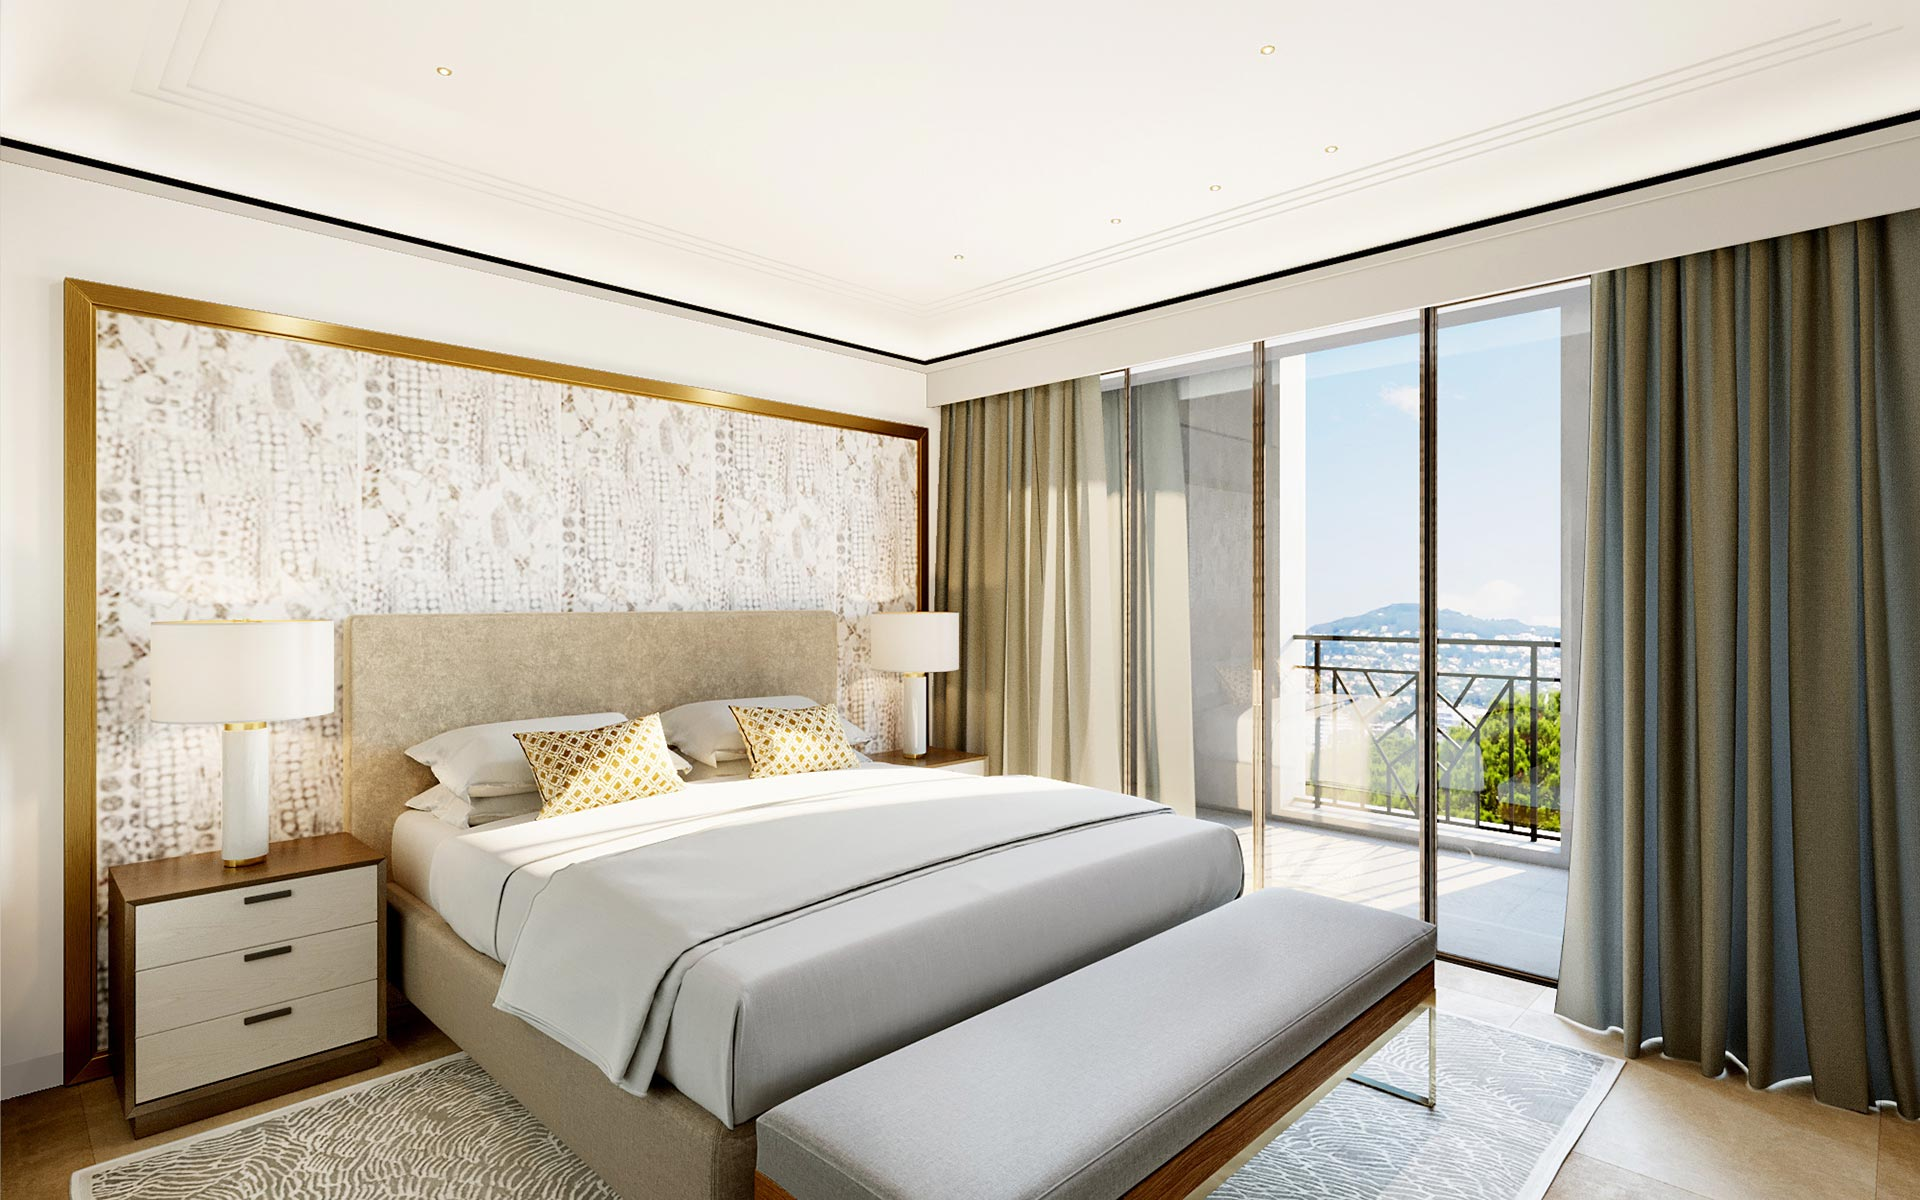 3D real estate development image of a bedroom for a luxury project